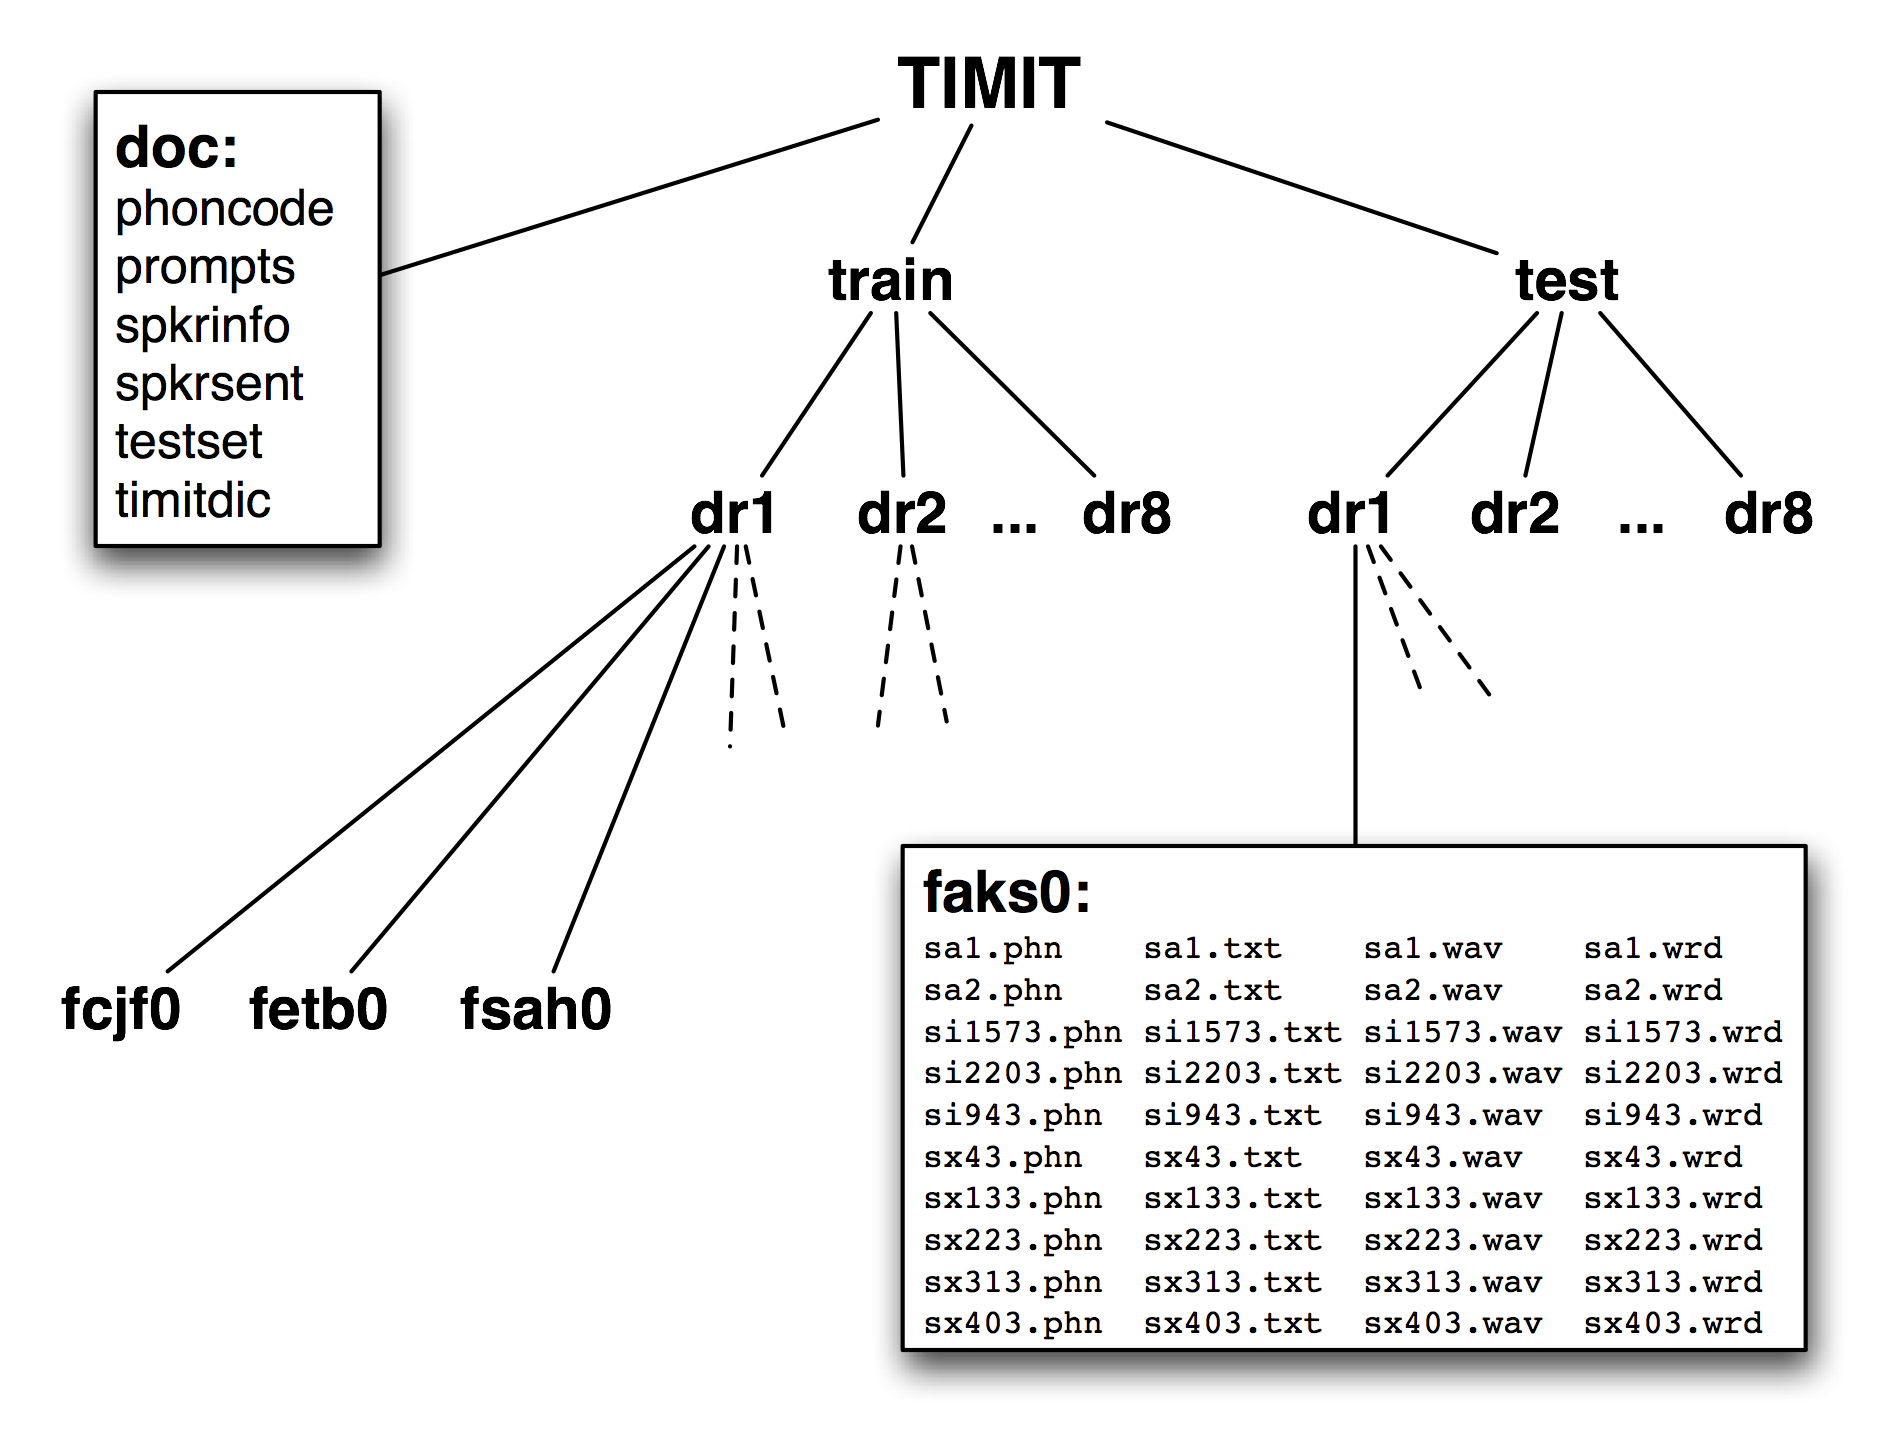 ../images/timit-structure.png